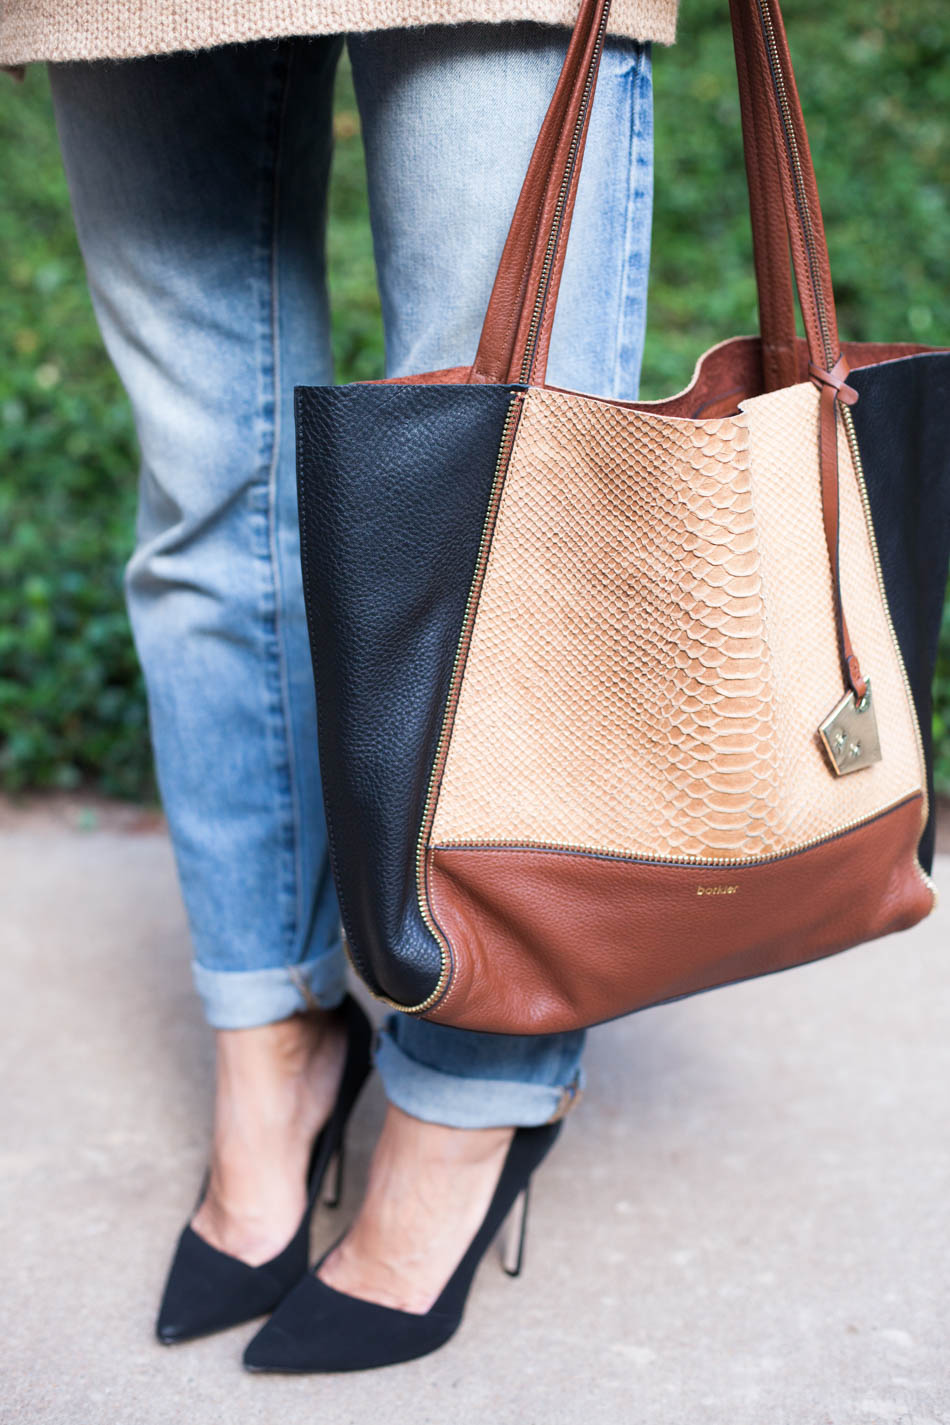 The Botkier Soho Tote | The Darling Detail